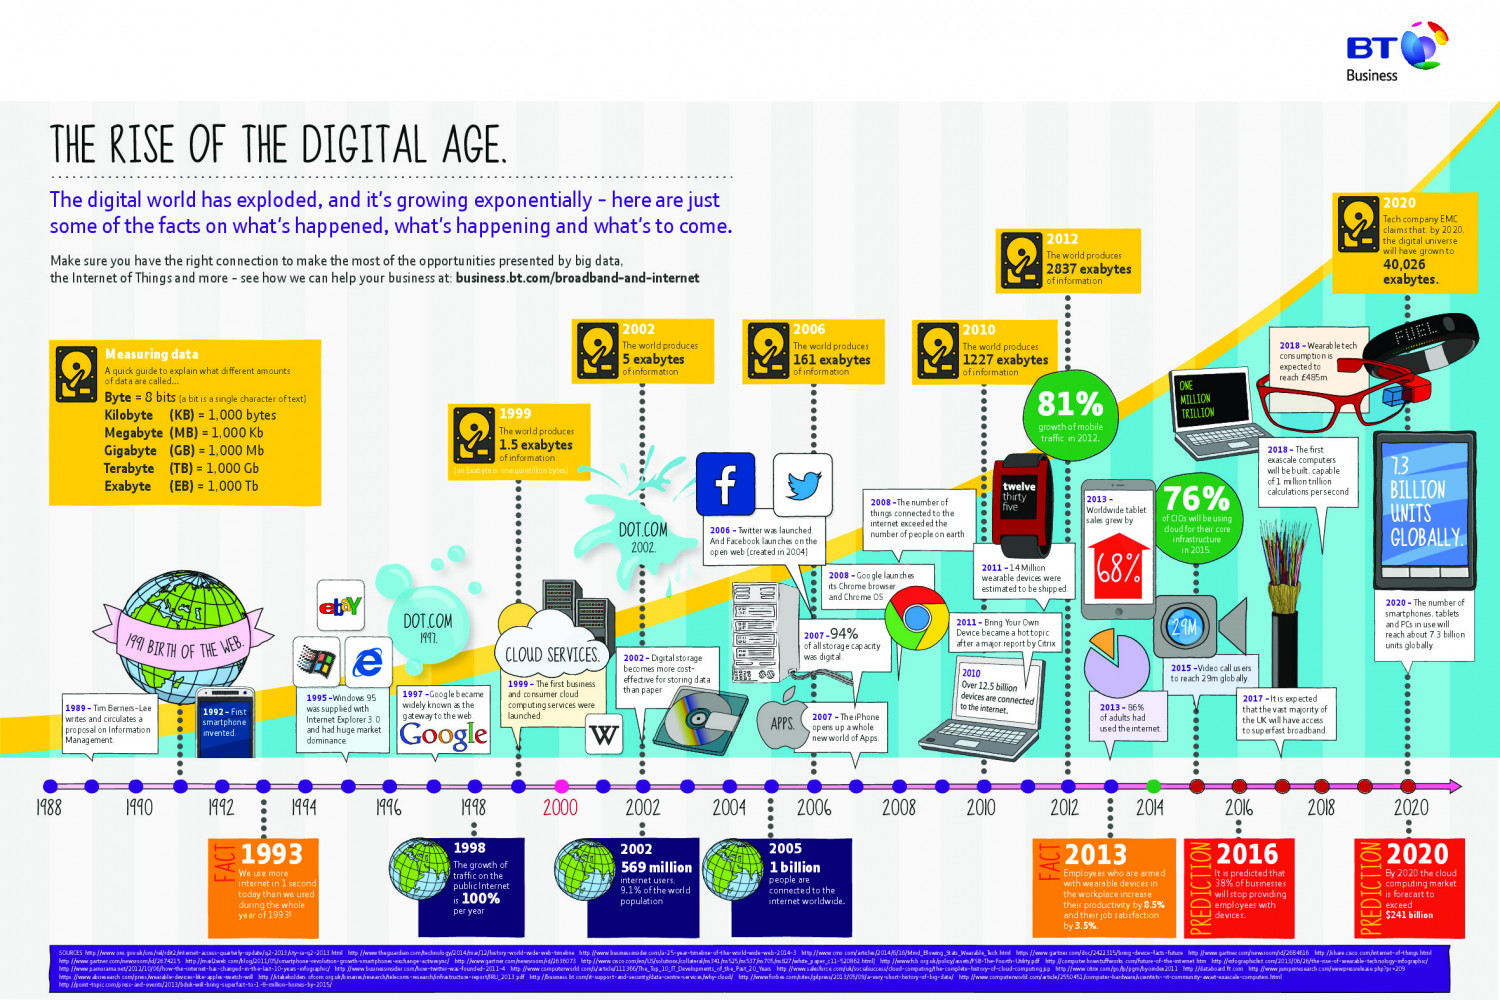 The Rise of the Digital Age - BT Business Infographic